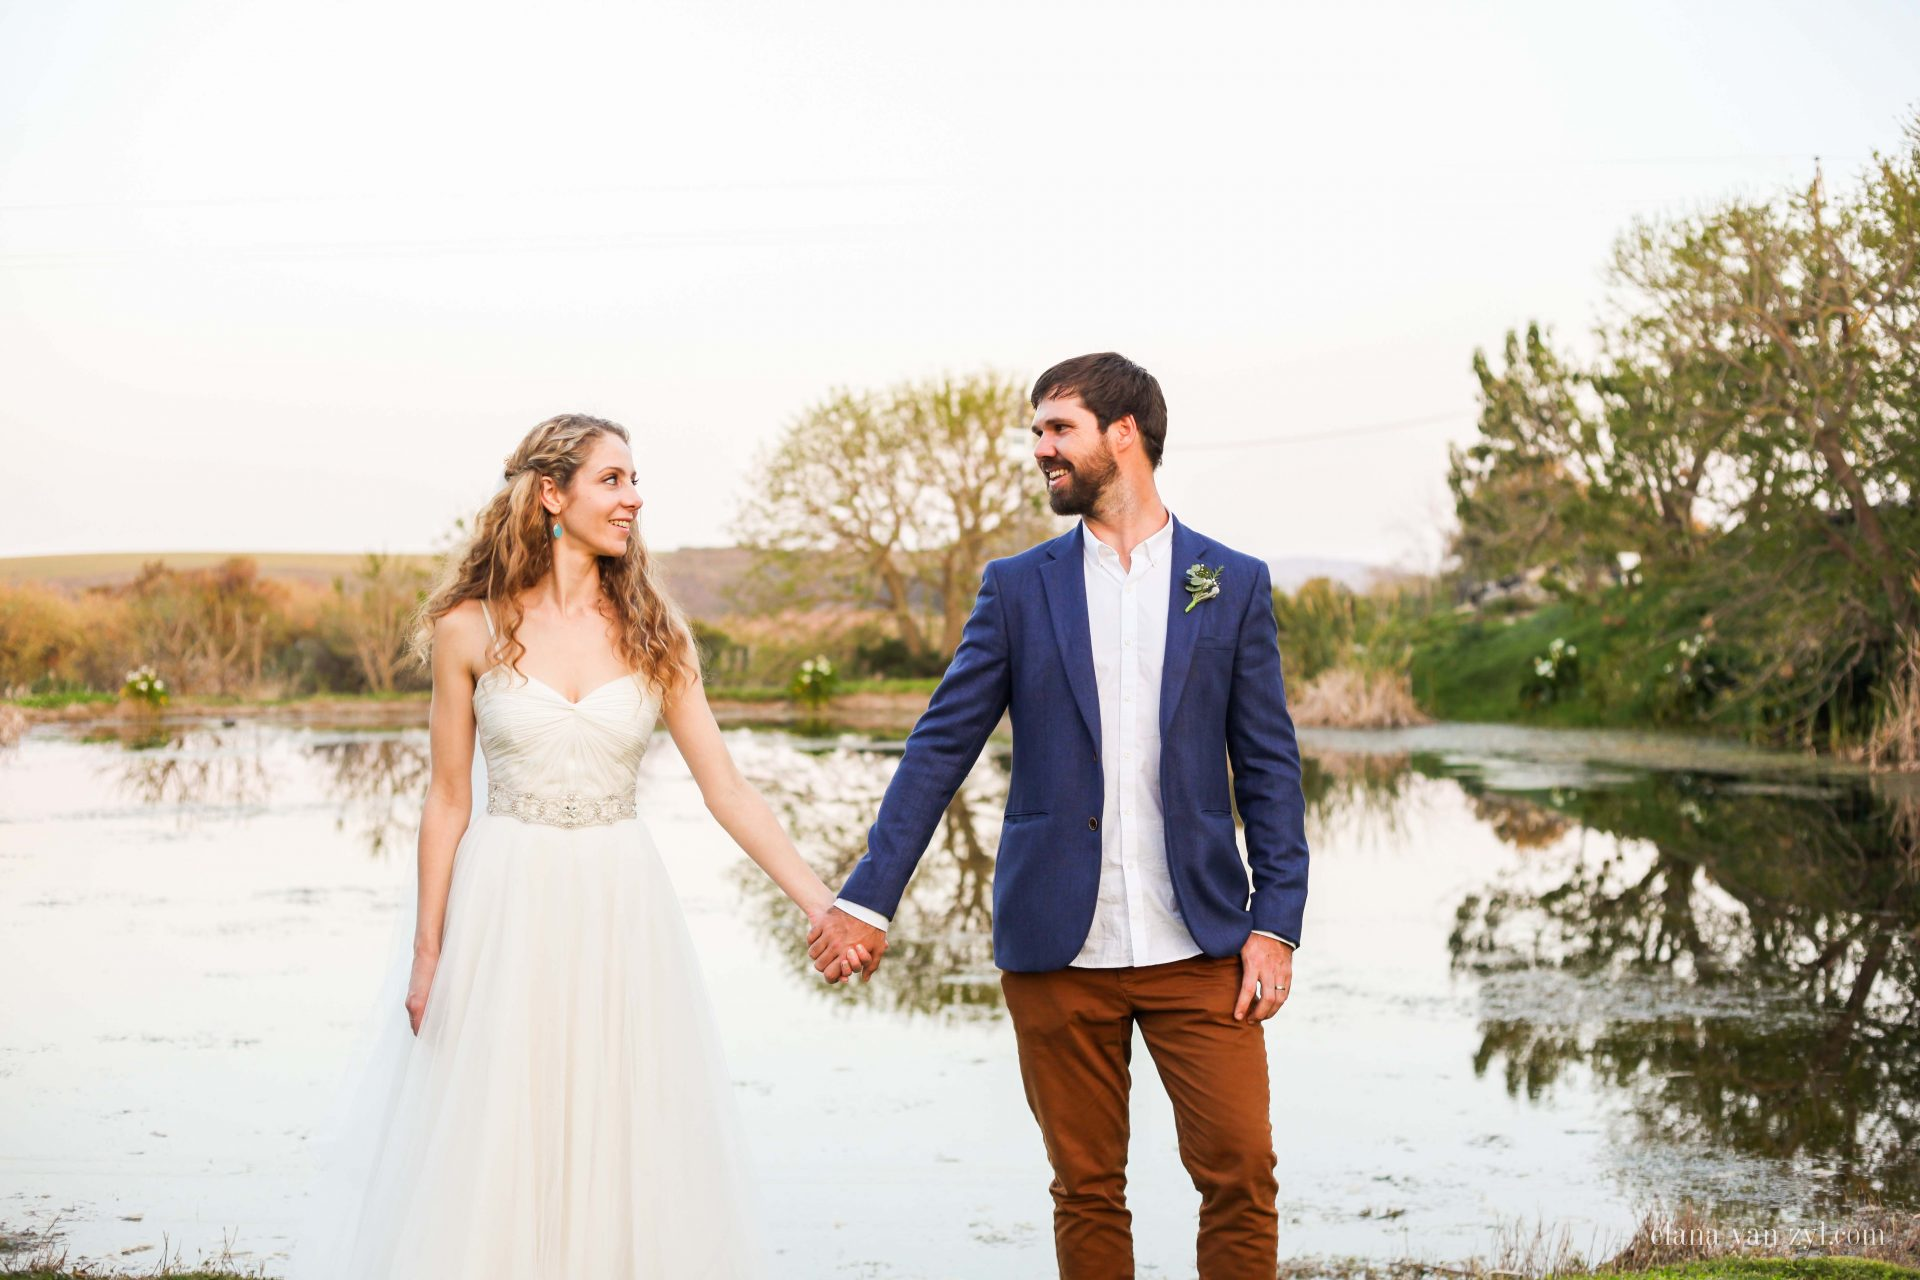 lorien-david-elana-van-zyl-swellendam-overberg-photographer-de-uijlenes-wedding-8404